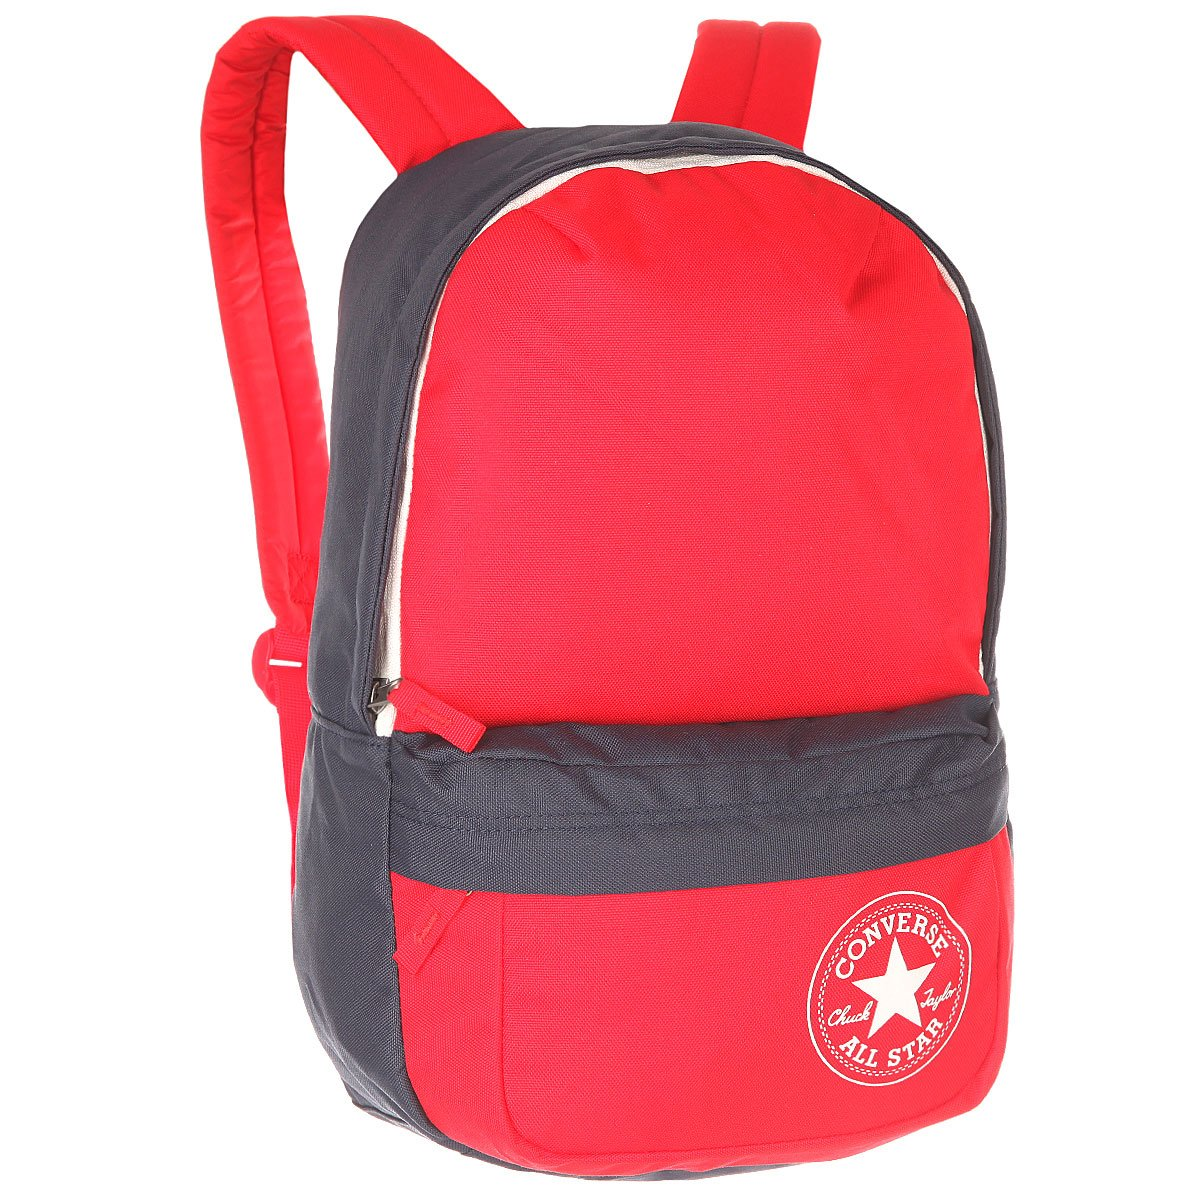 94f71da2de2f Ies Mini Backpack Fenix Toulouse Handball